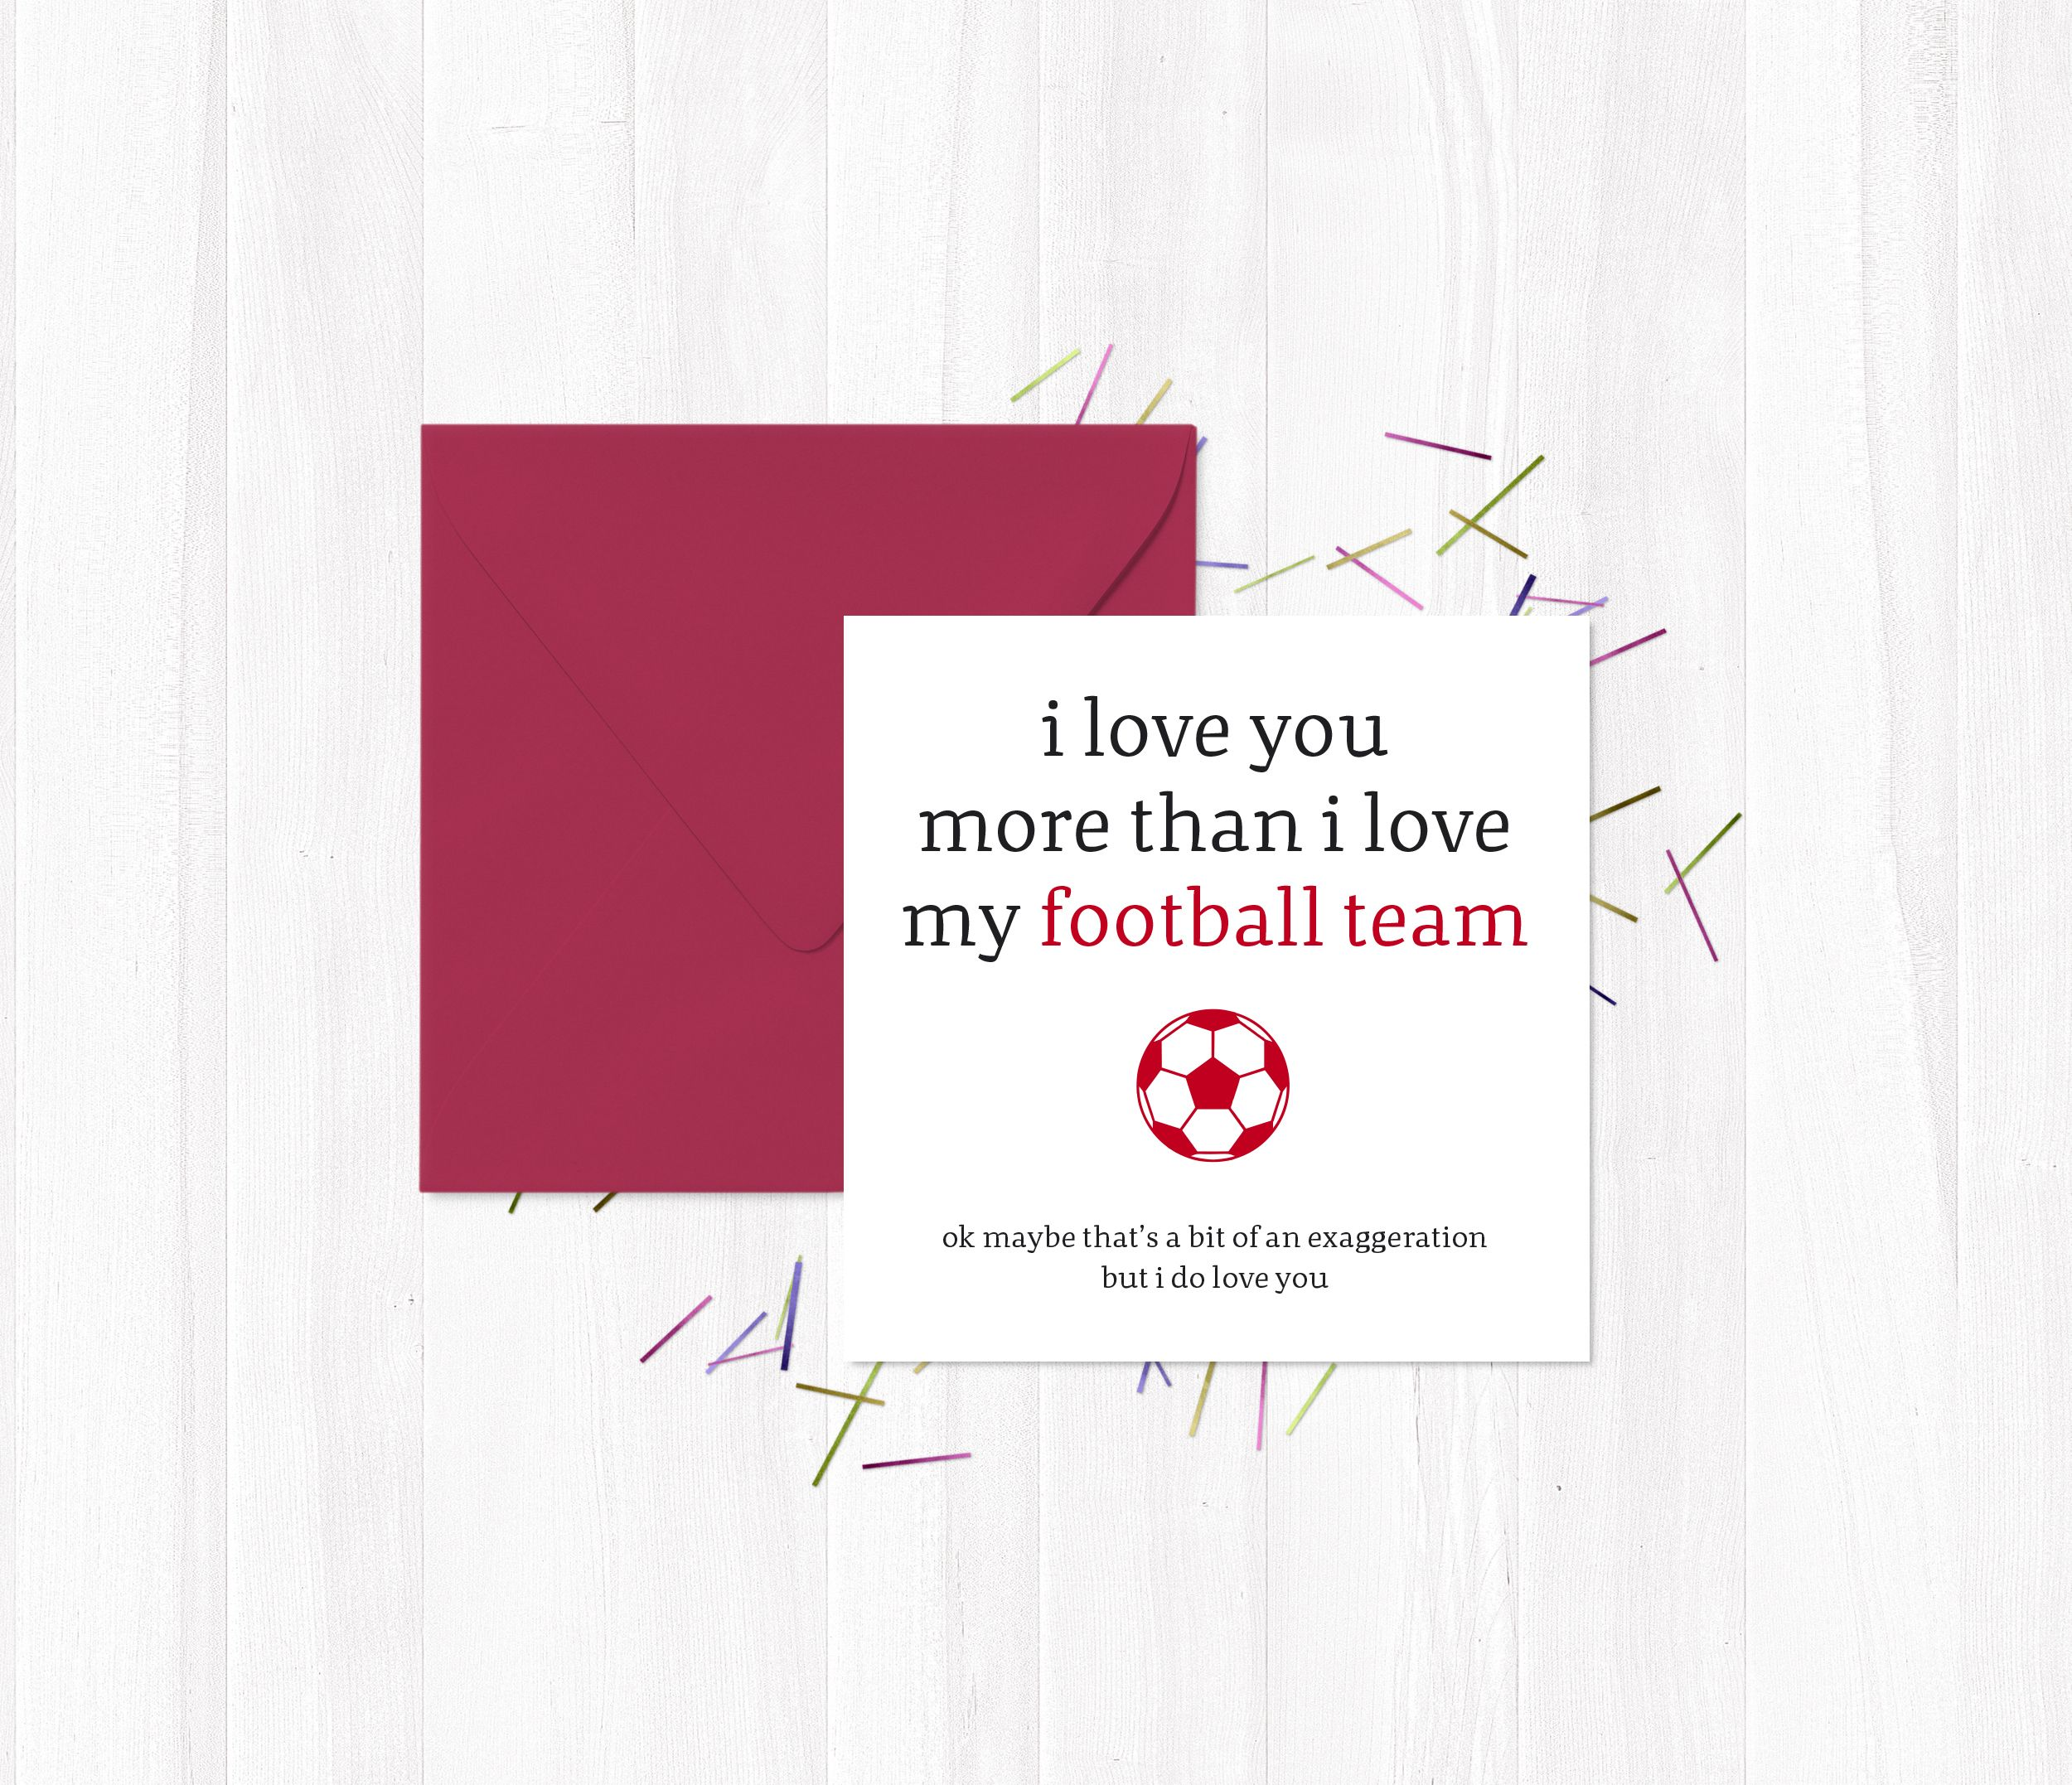 Rude greetings cards i love you more than i love my football team rude greetings cards i love you more than i love my football team football kristyandbryce Choice Image